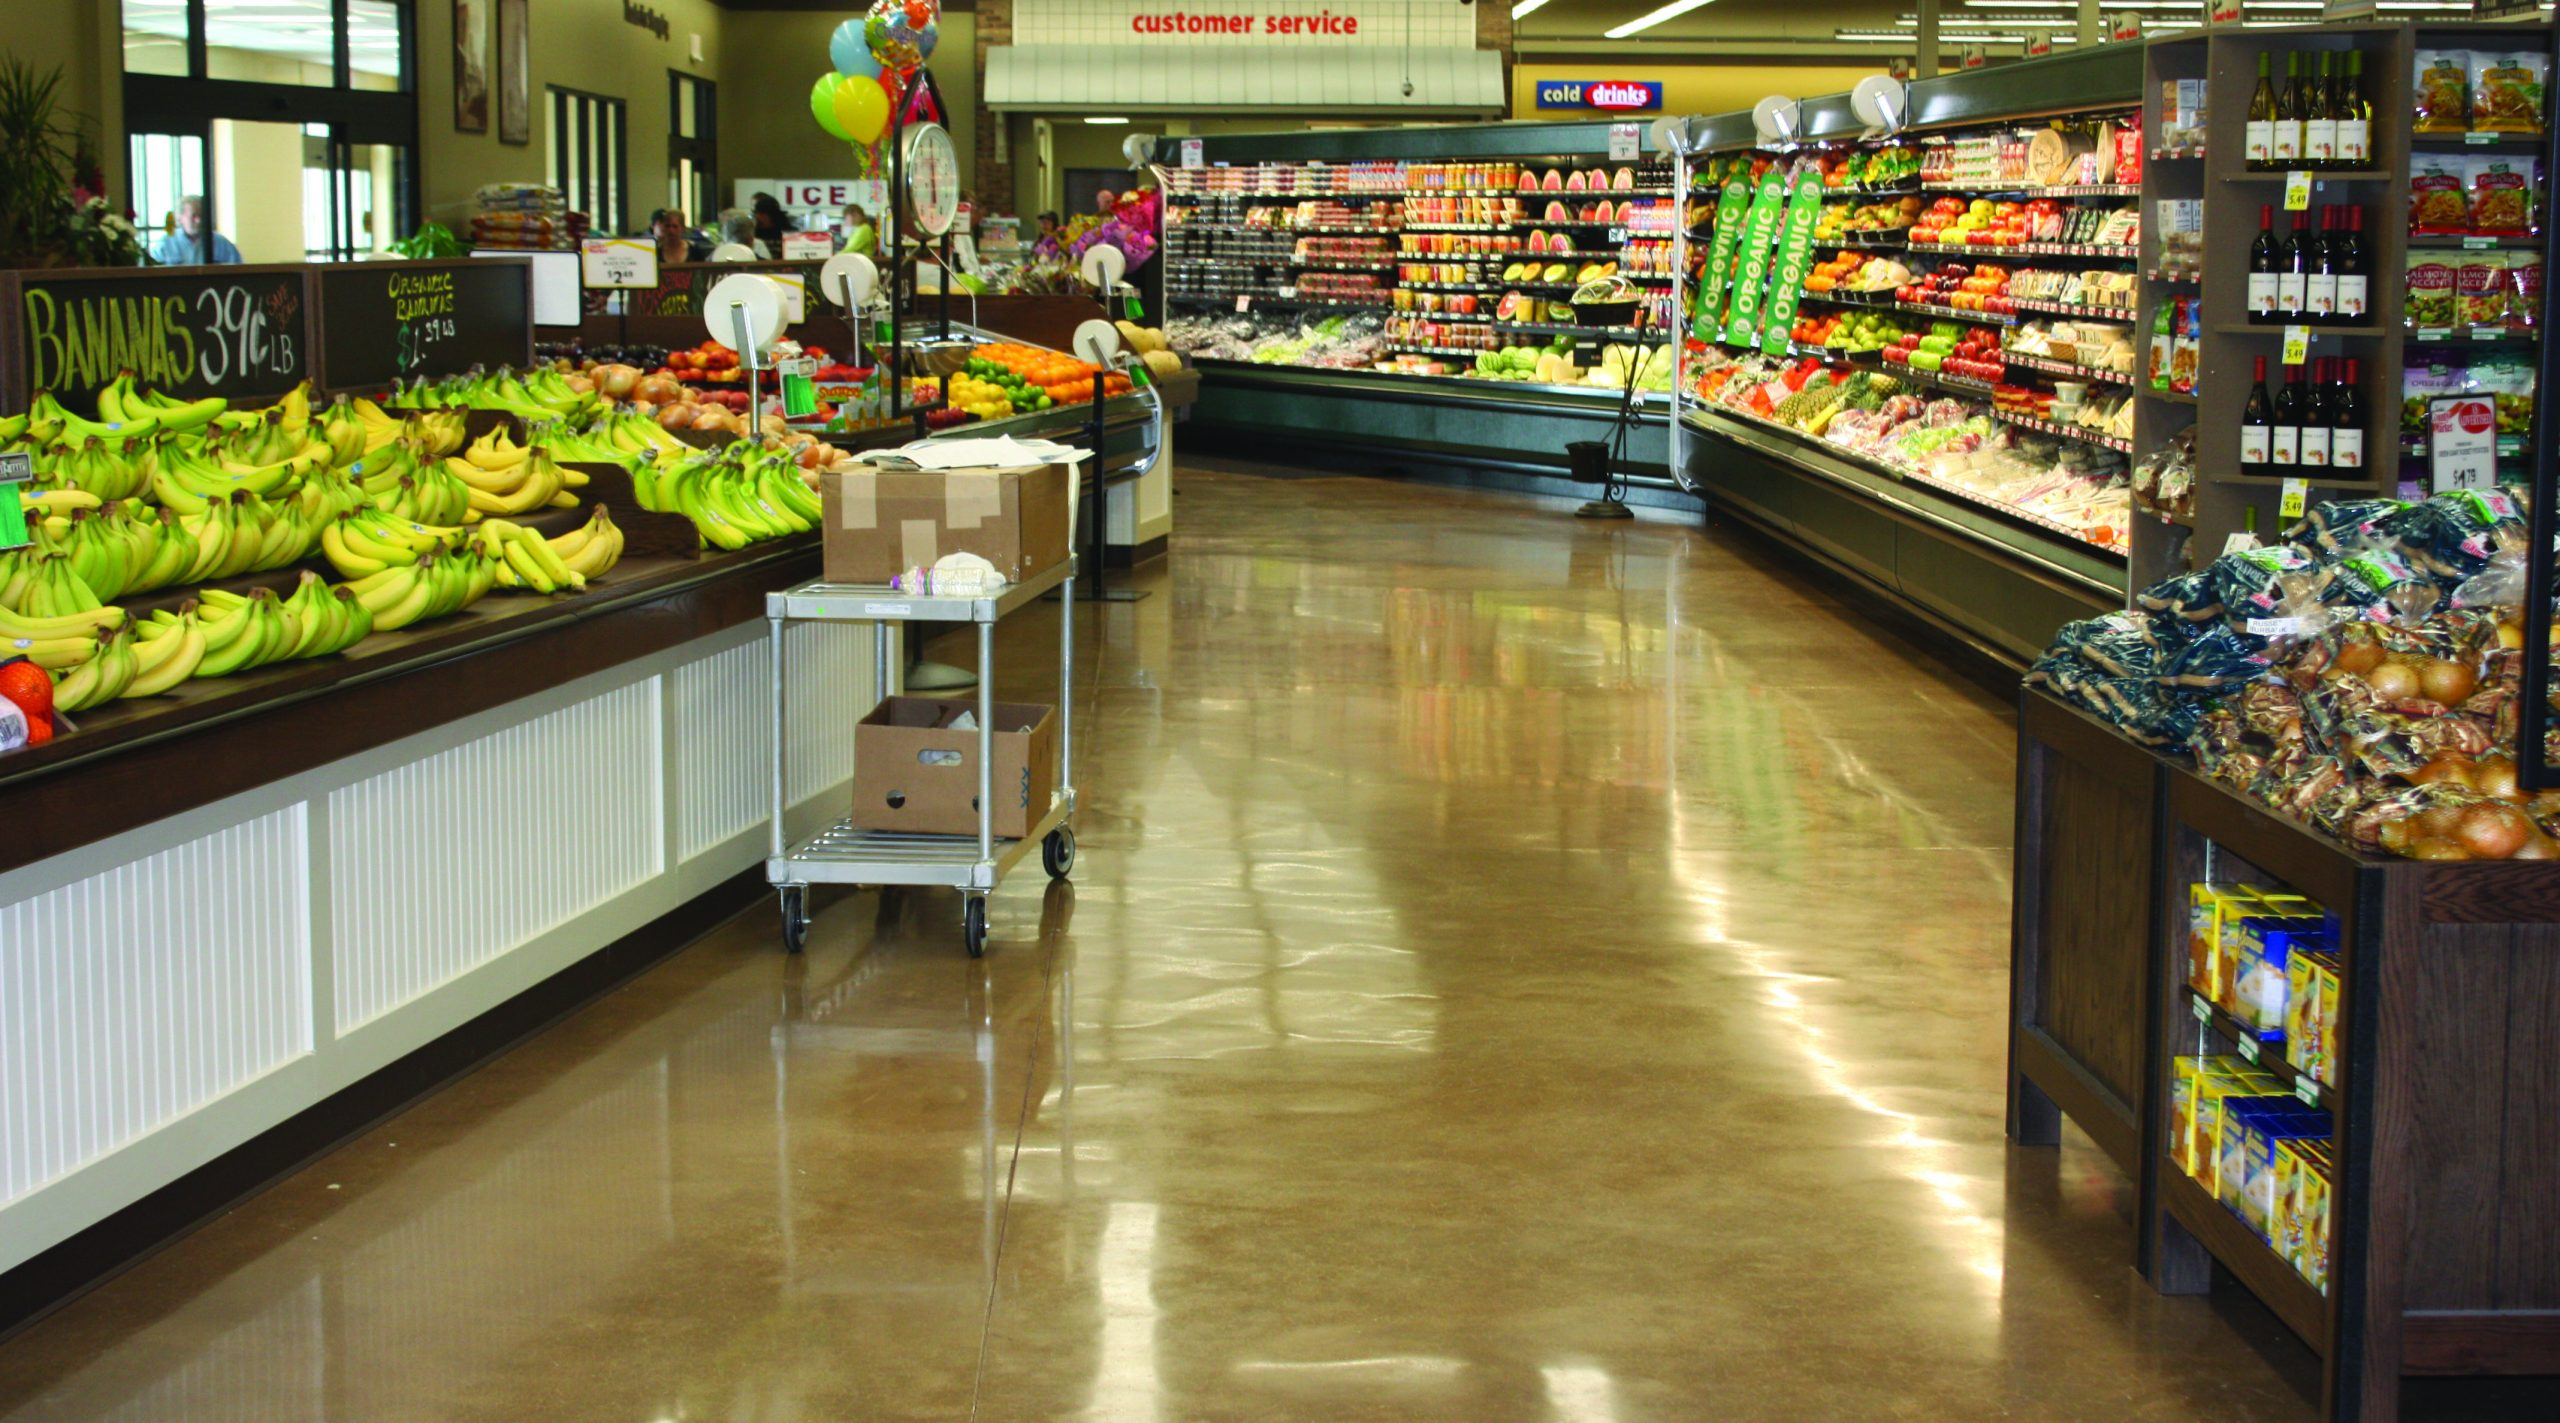 Grocery store polished concrete floor